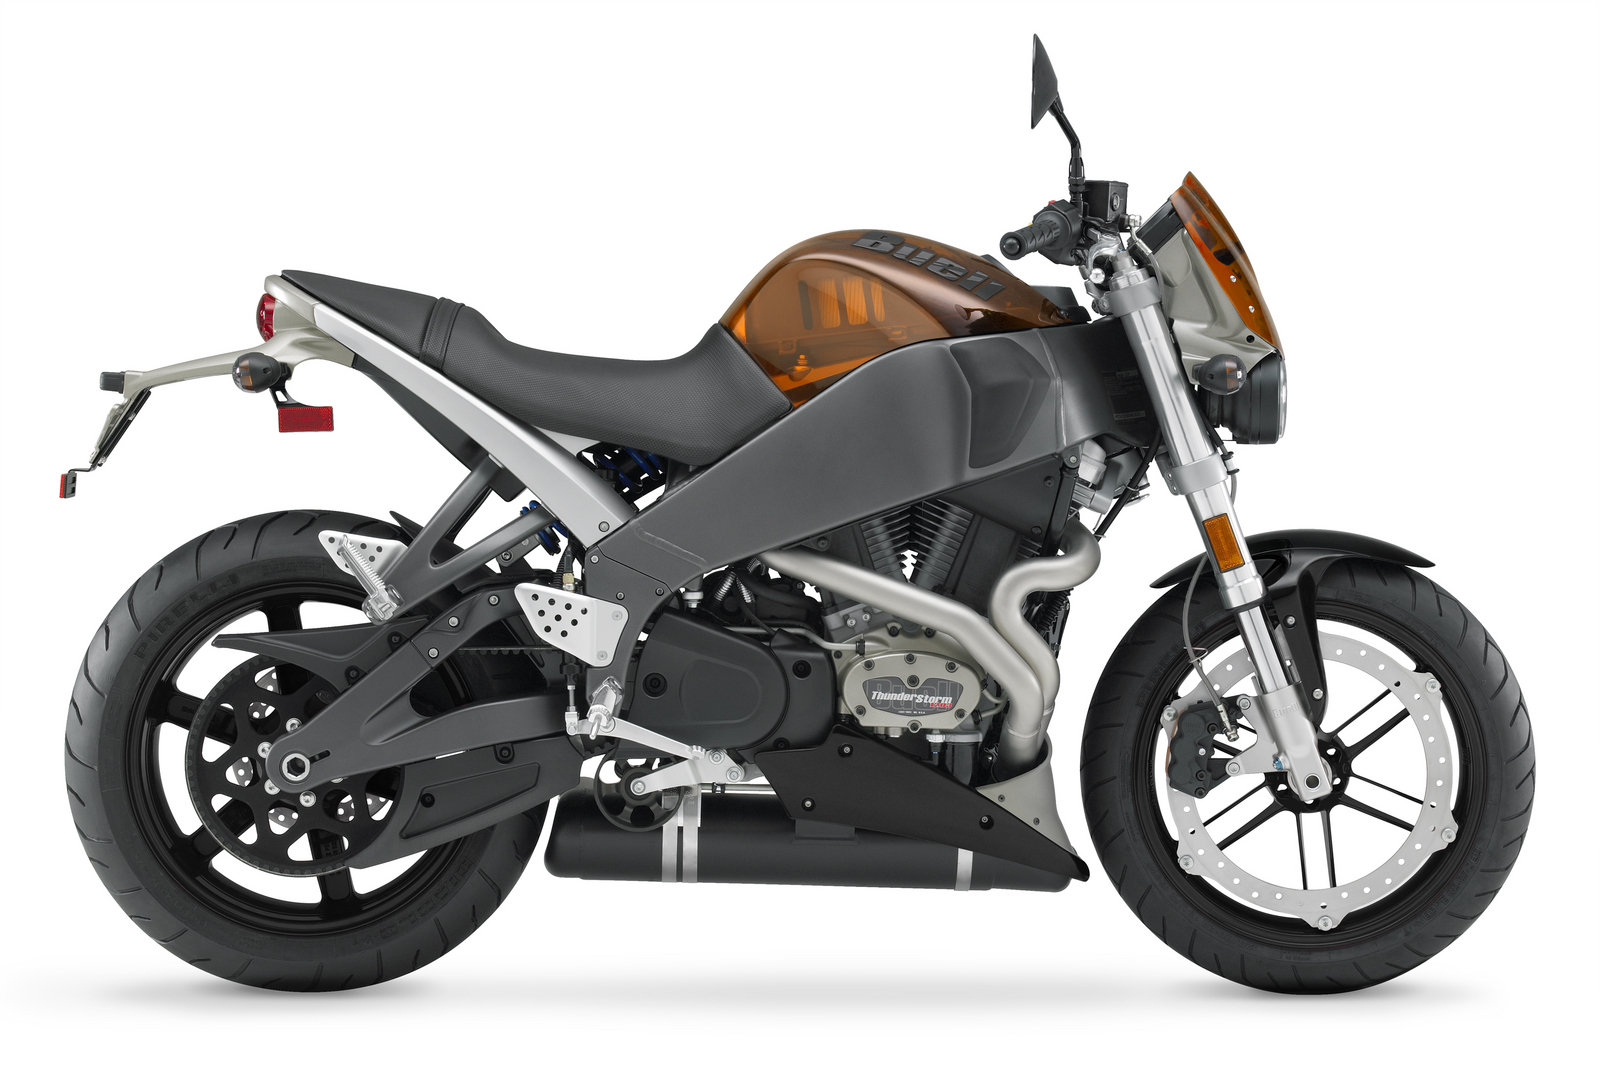 2008 Buell Lightning Xb12s Picture 236171 Motorcycle Review Top Speed